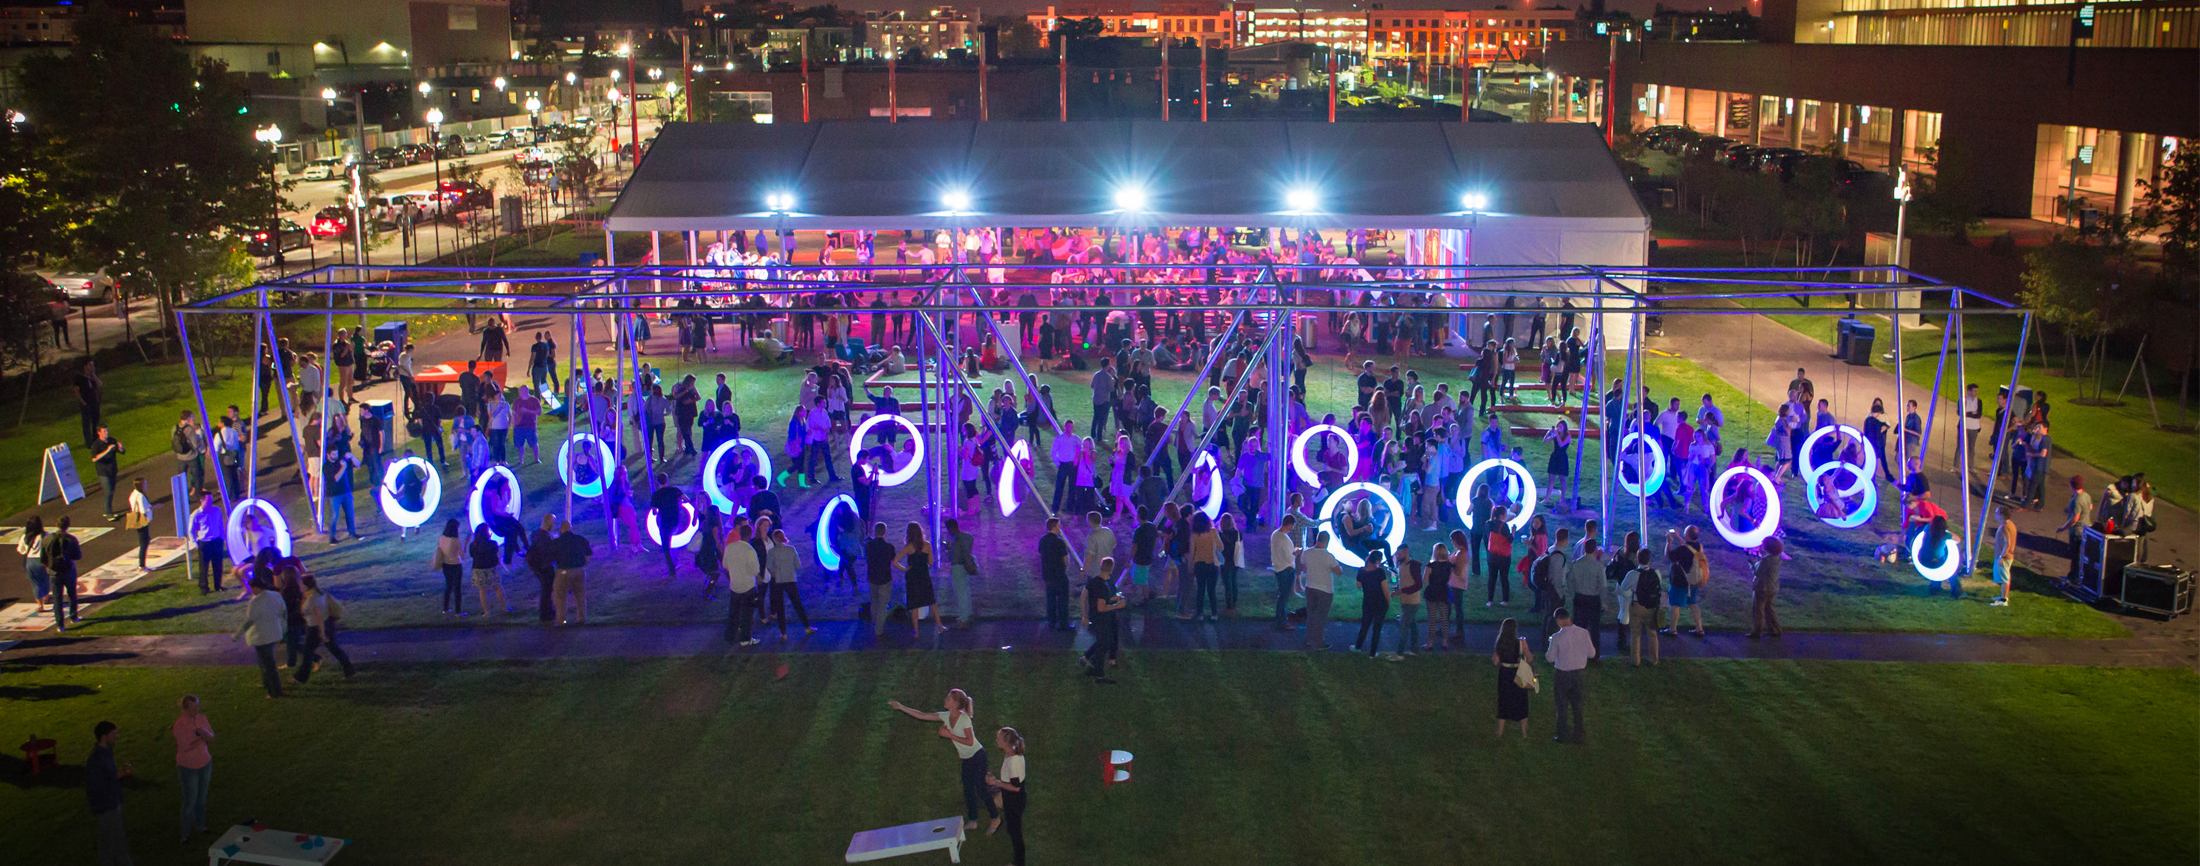 """PCMA names The Lawn On D """"Insanely Innovative Meeting Space"""" in 2018 Best in Show Awards"""